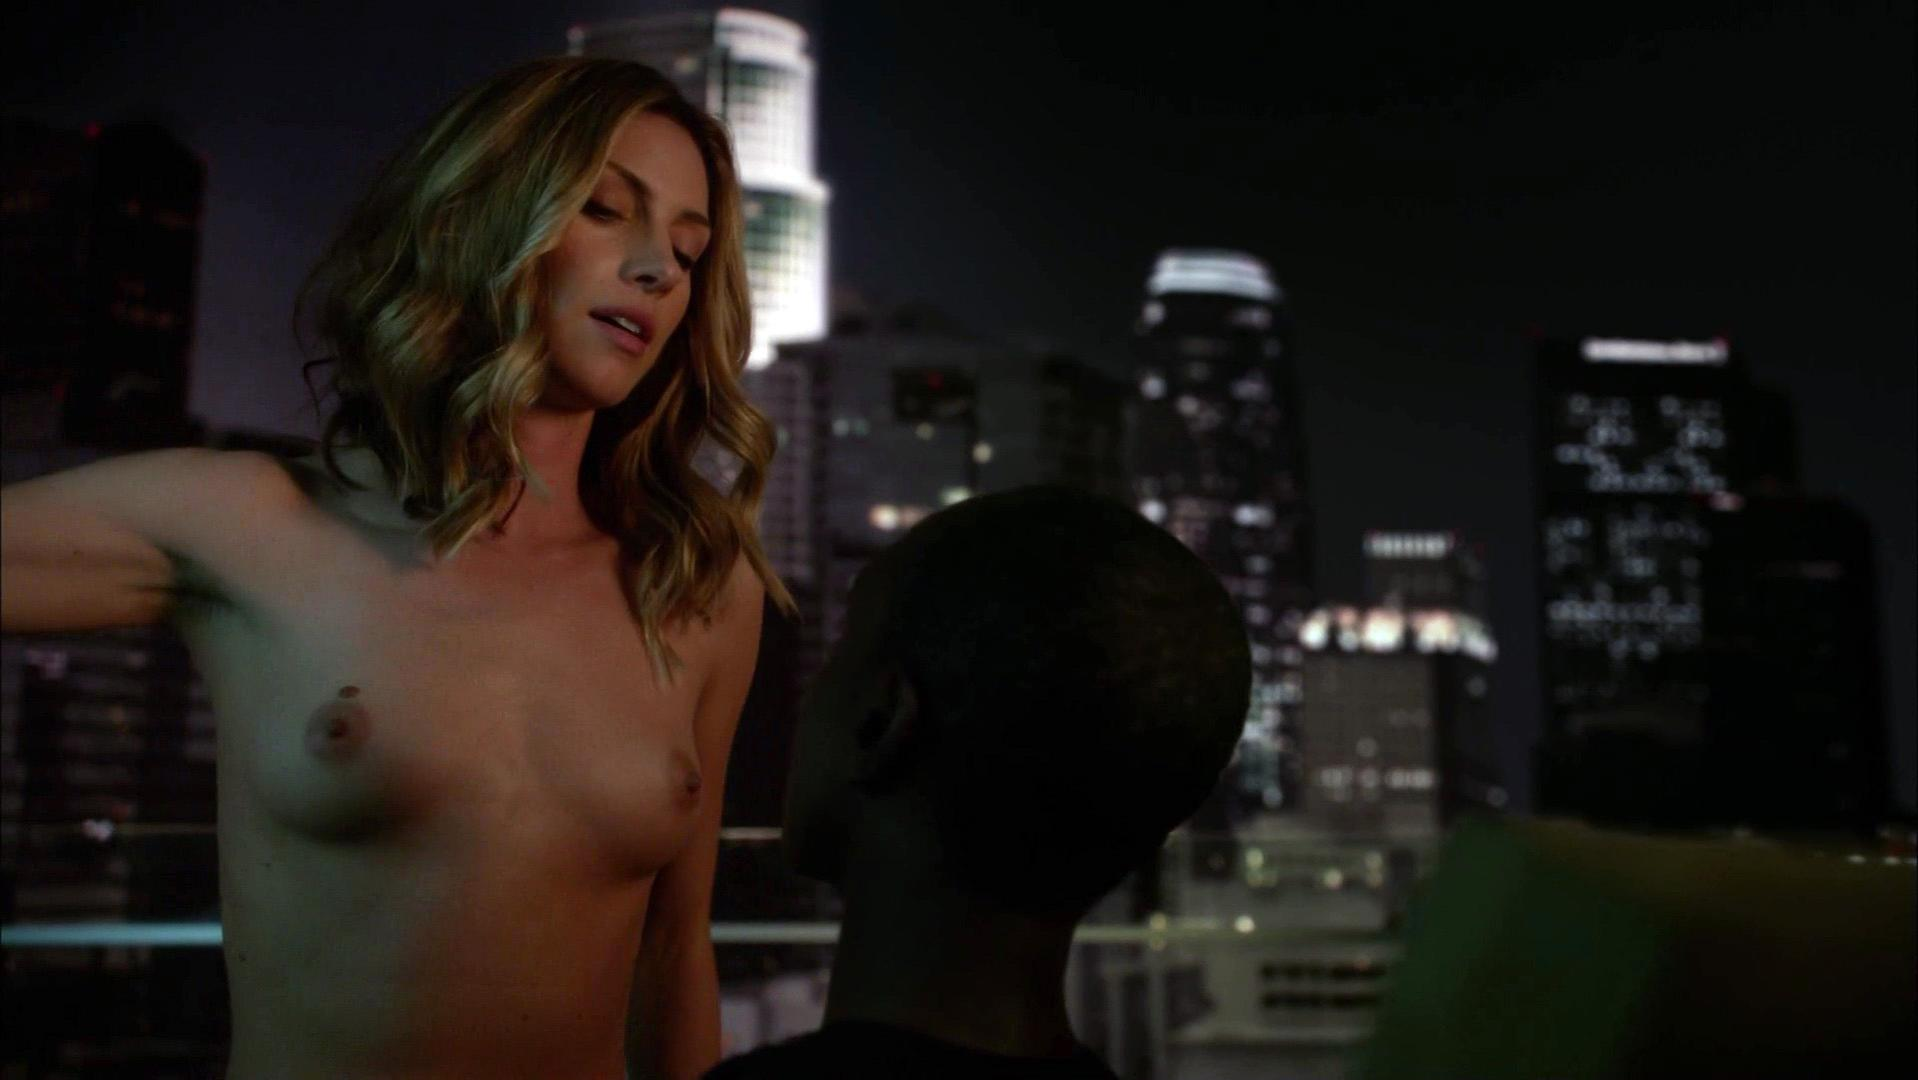 Dawn Olivieri nude - House of Lies s03e08 (2014)